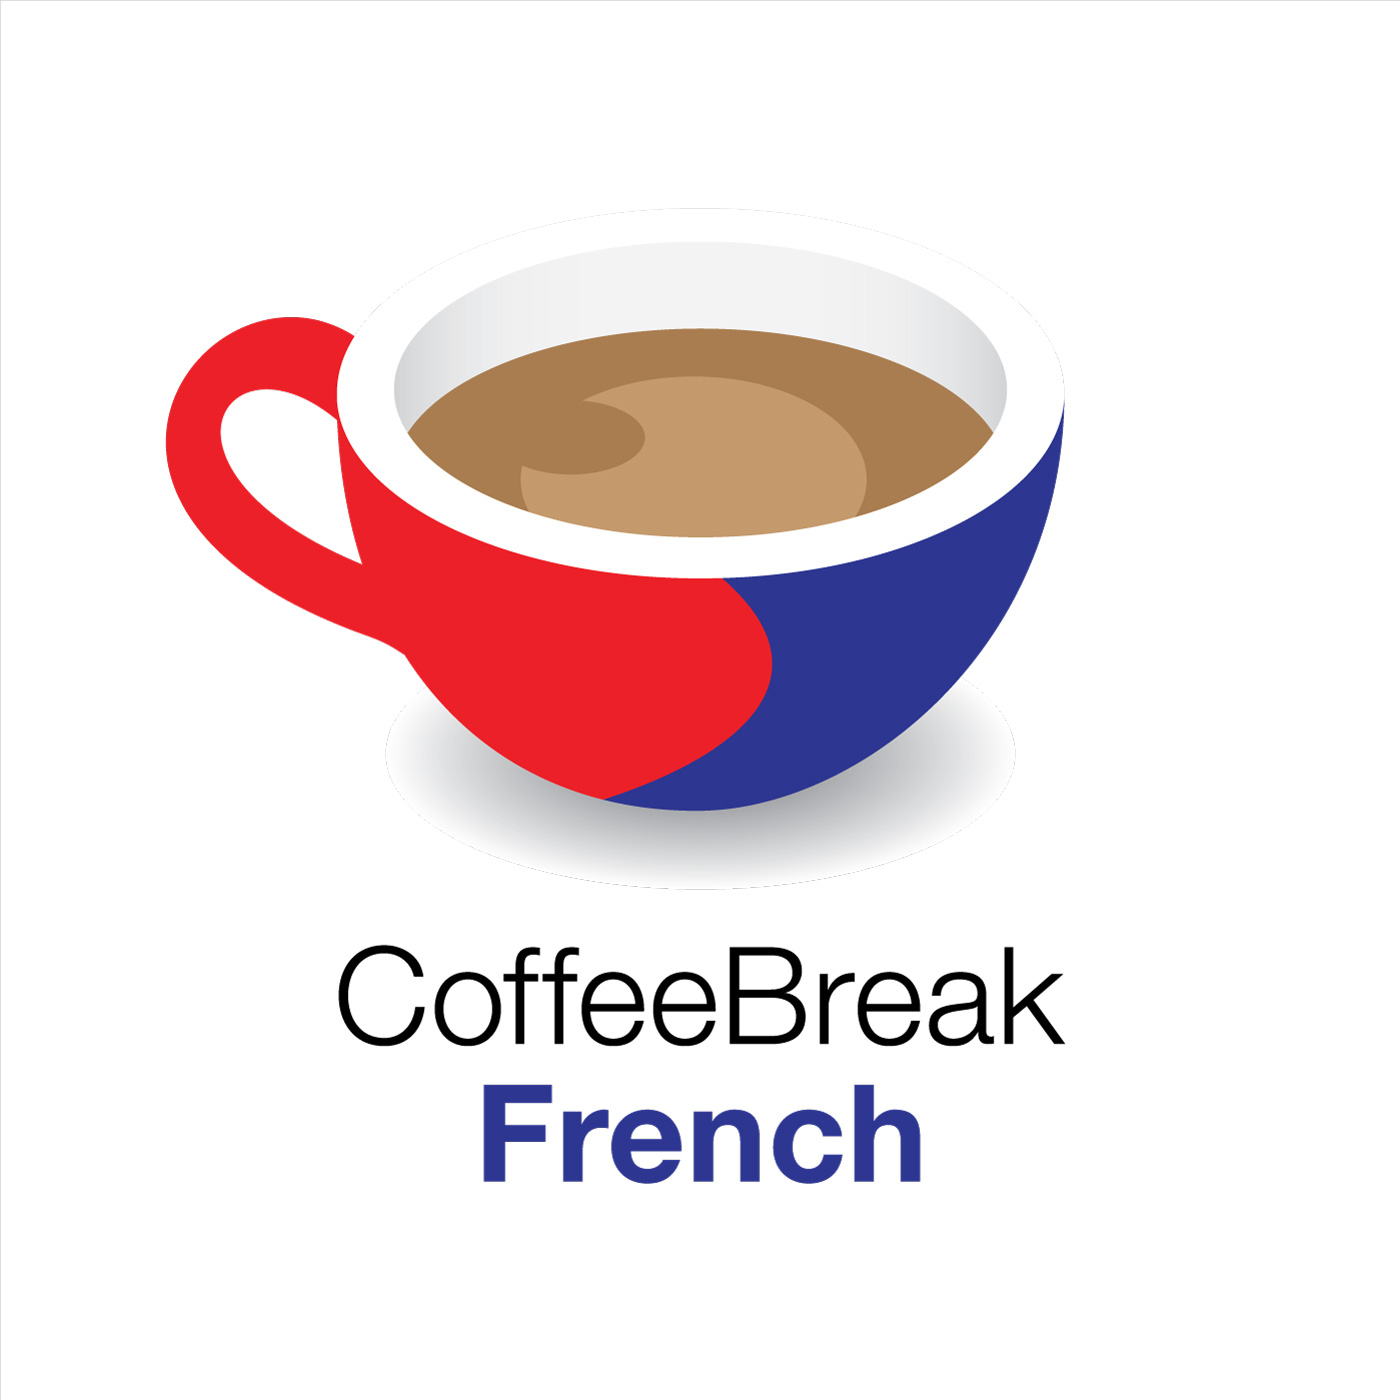 The Coffee Break French Team